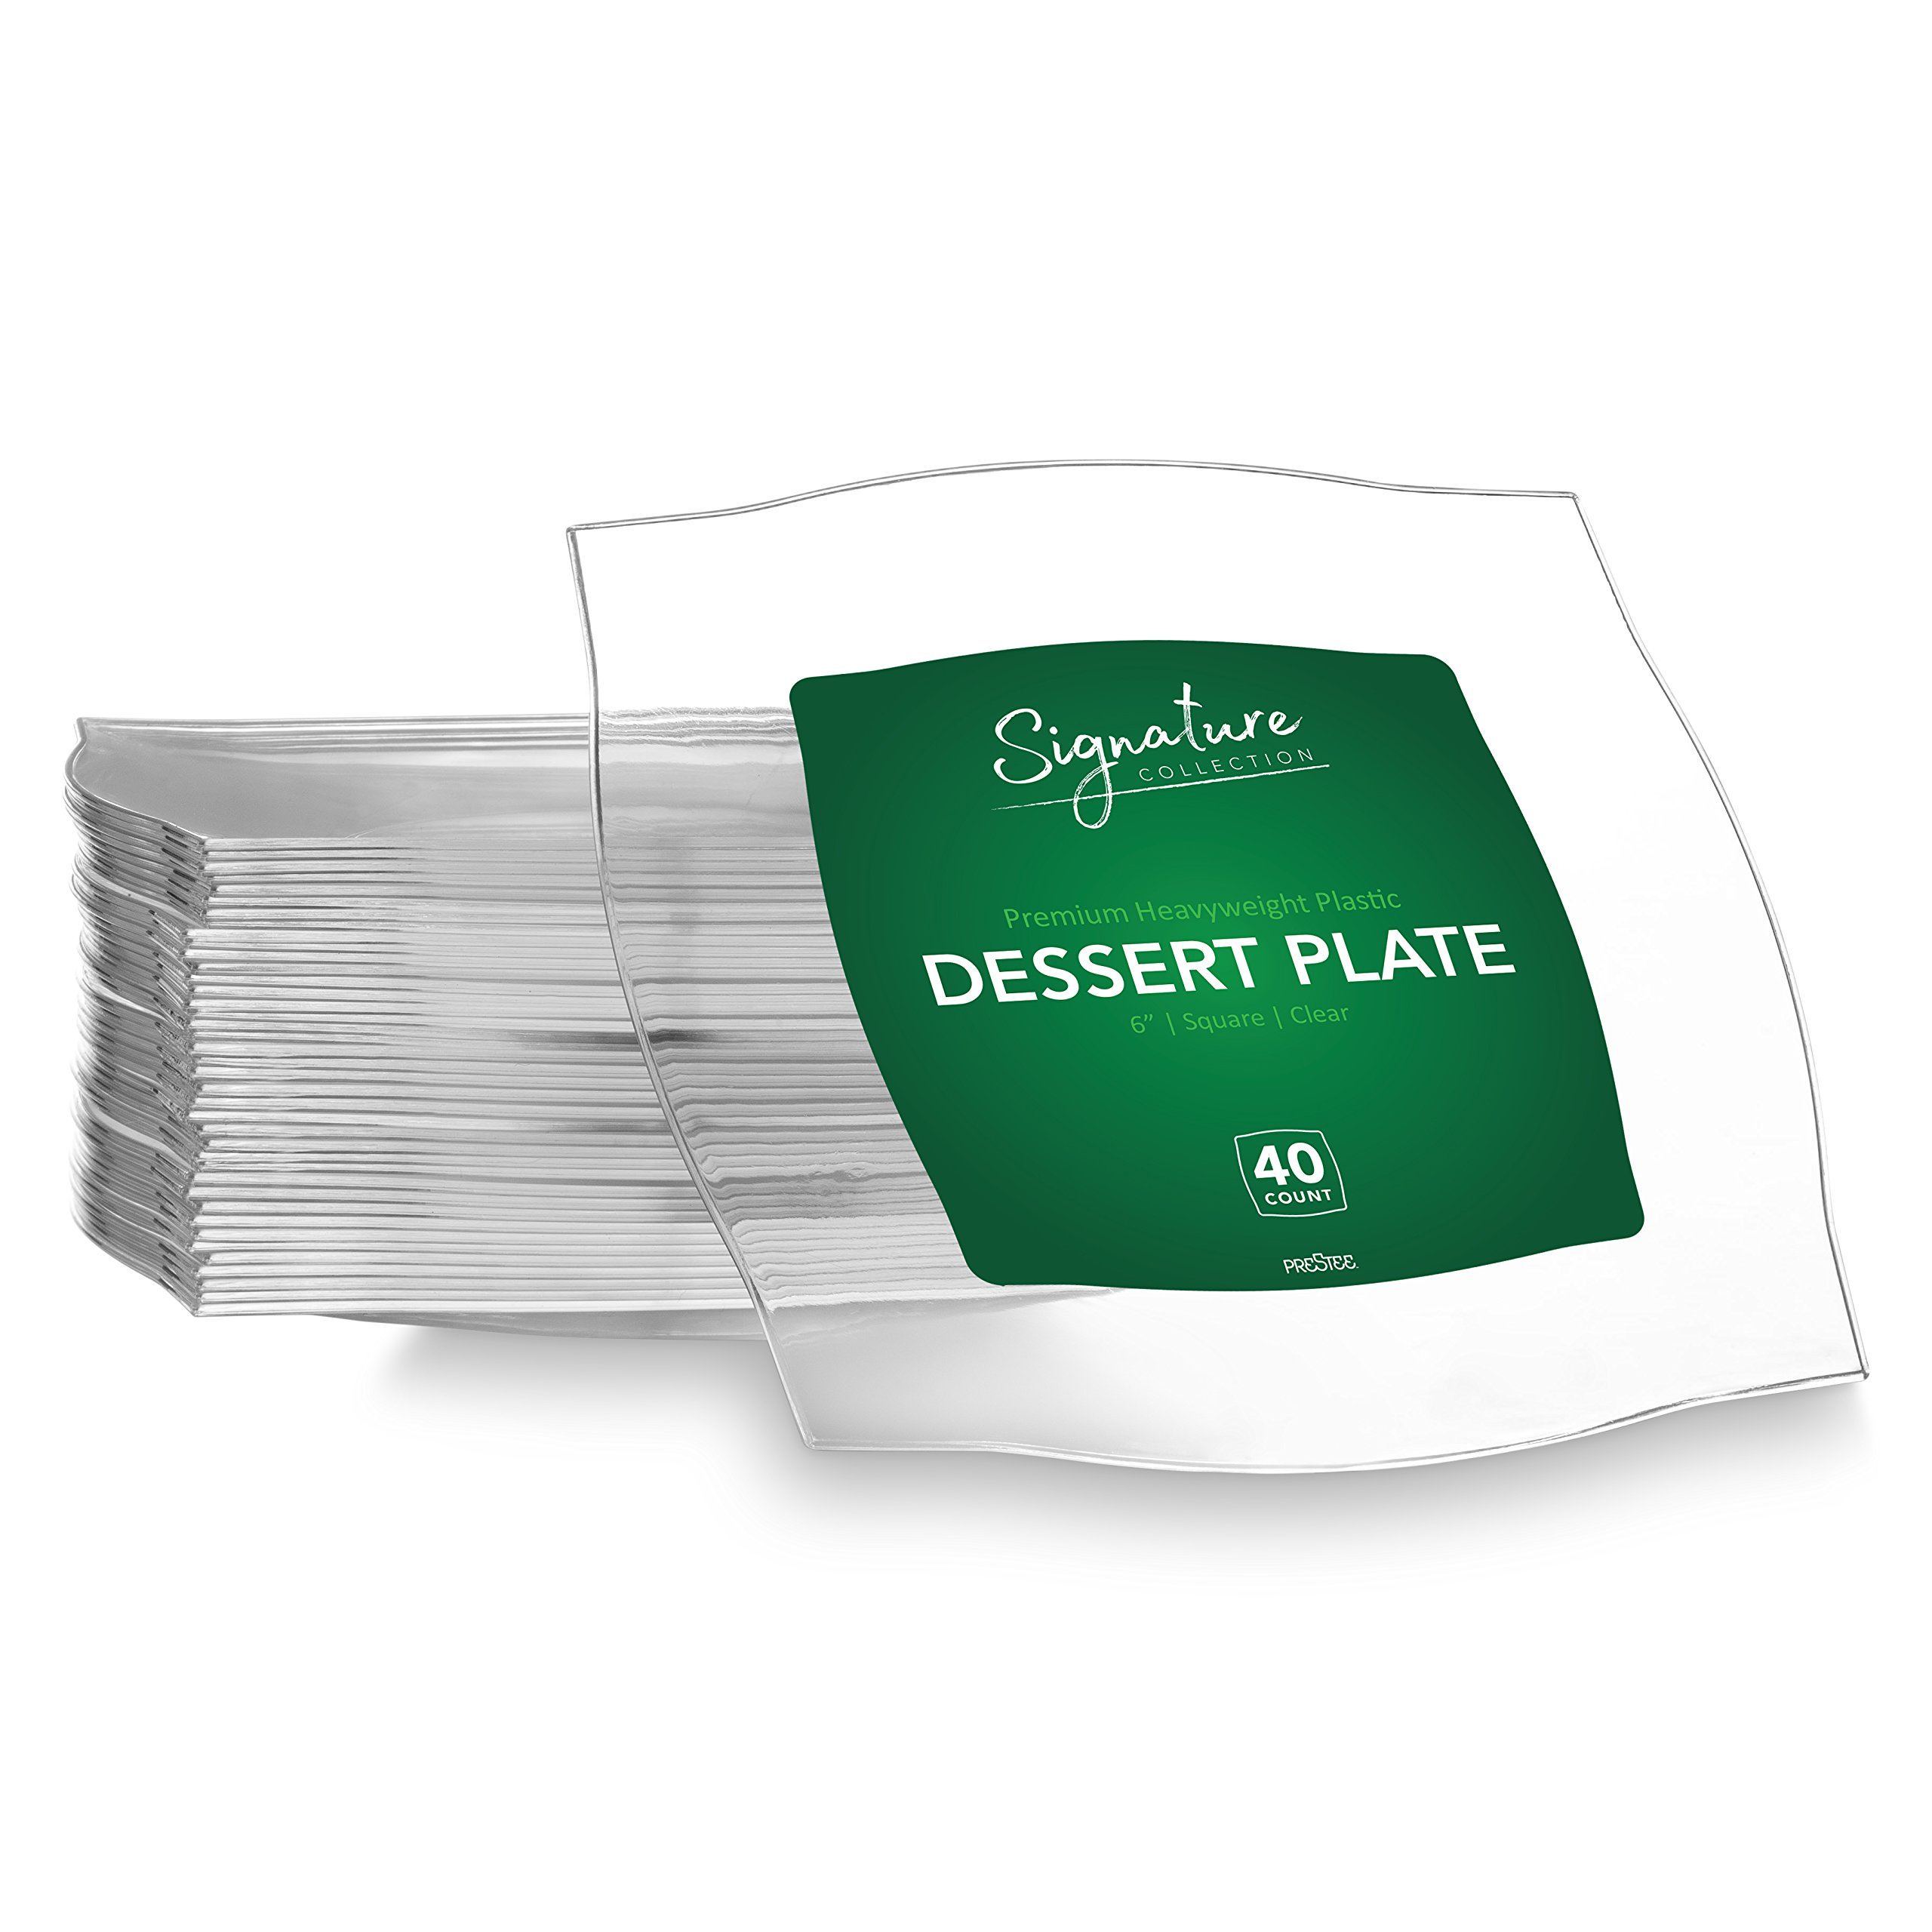 SIGNATURE PARTY DISPOSABLE CLEAR PLASTIC PLATES | 6 Inch Square Wedding Dessert Plates, 40 Ct | Elegant & Fancy Heavy Duty Hard Party Supplies Plates for all Holidays & Occasions